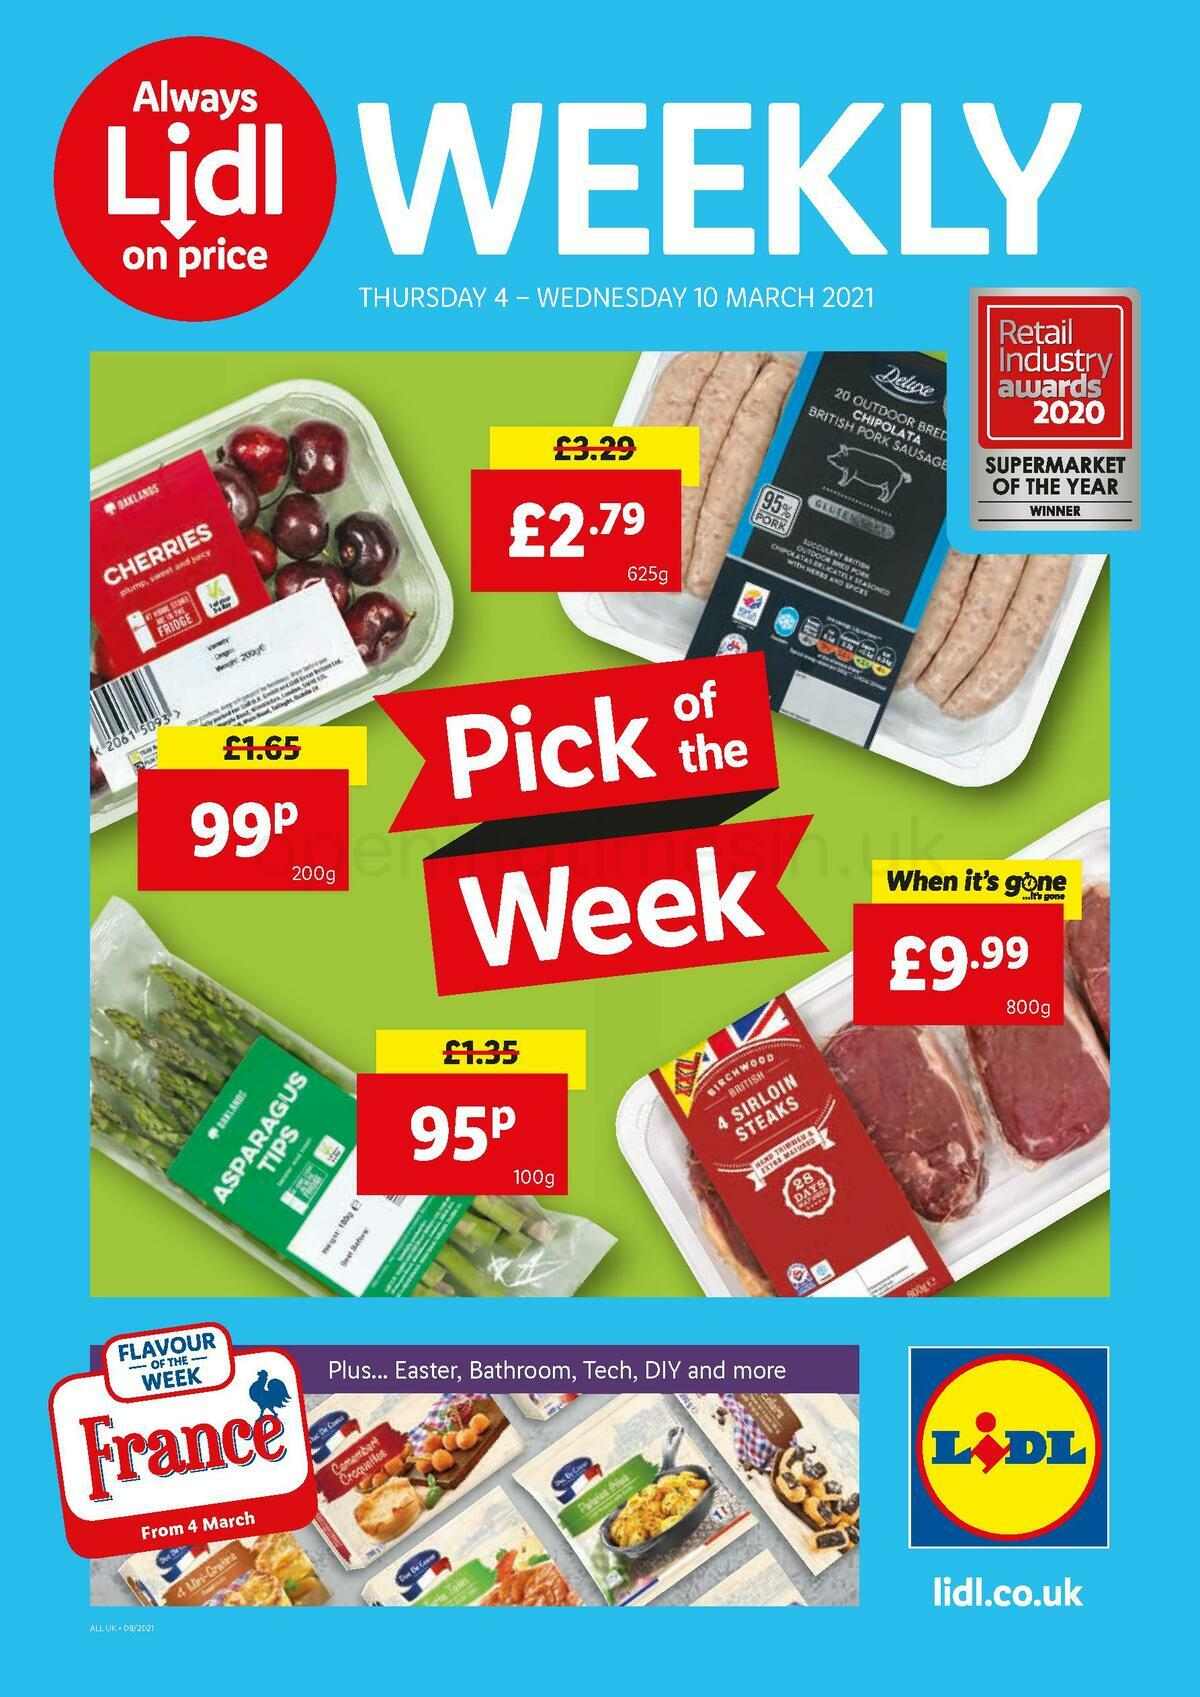 LIDL Offers from March 4